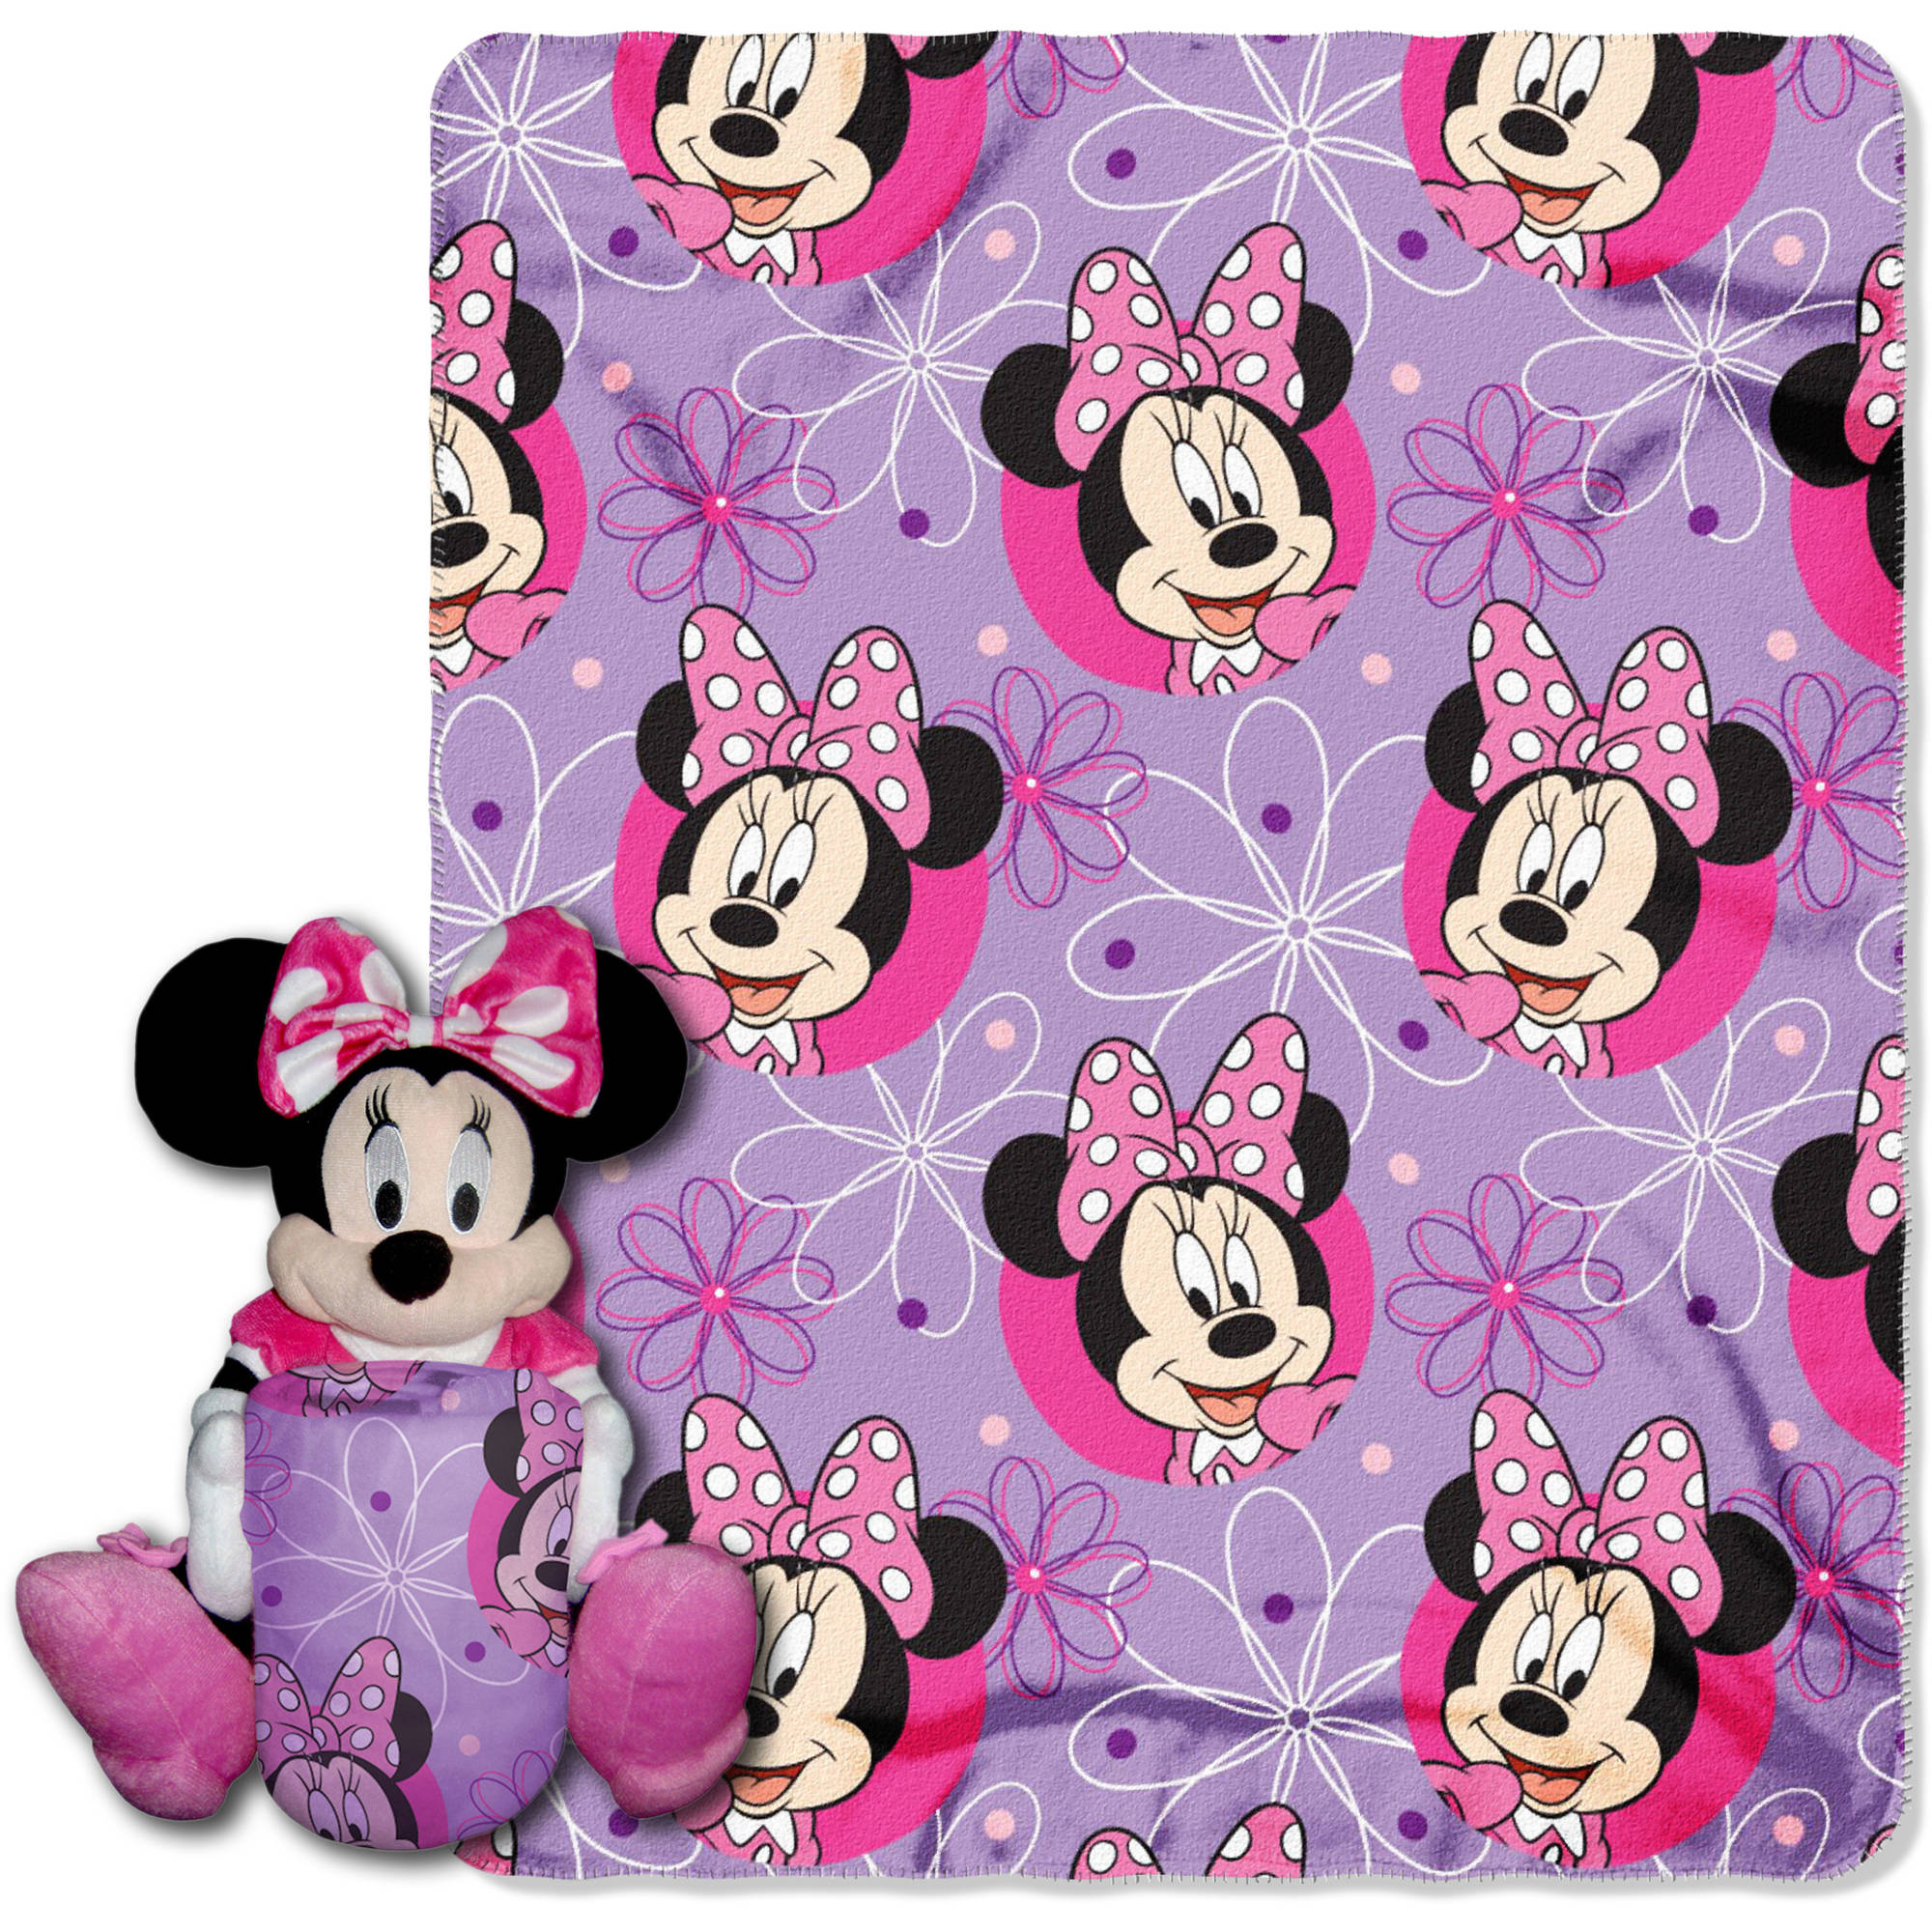 Disneys Minnie Mouse, Minnie Bowtique Minnie Hugger Character Pillow and 40x 50 Fleece Throw Set